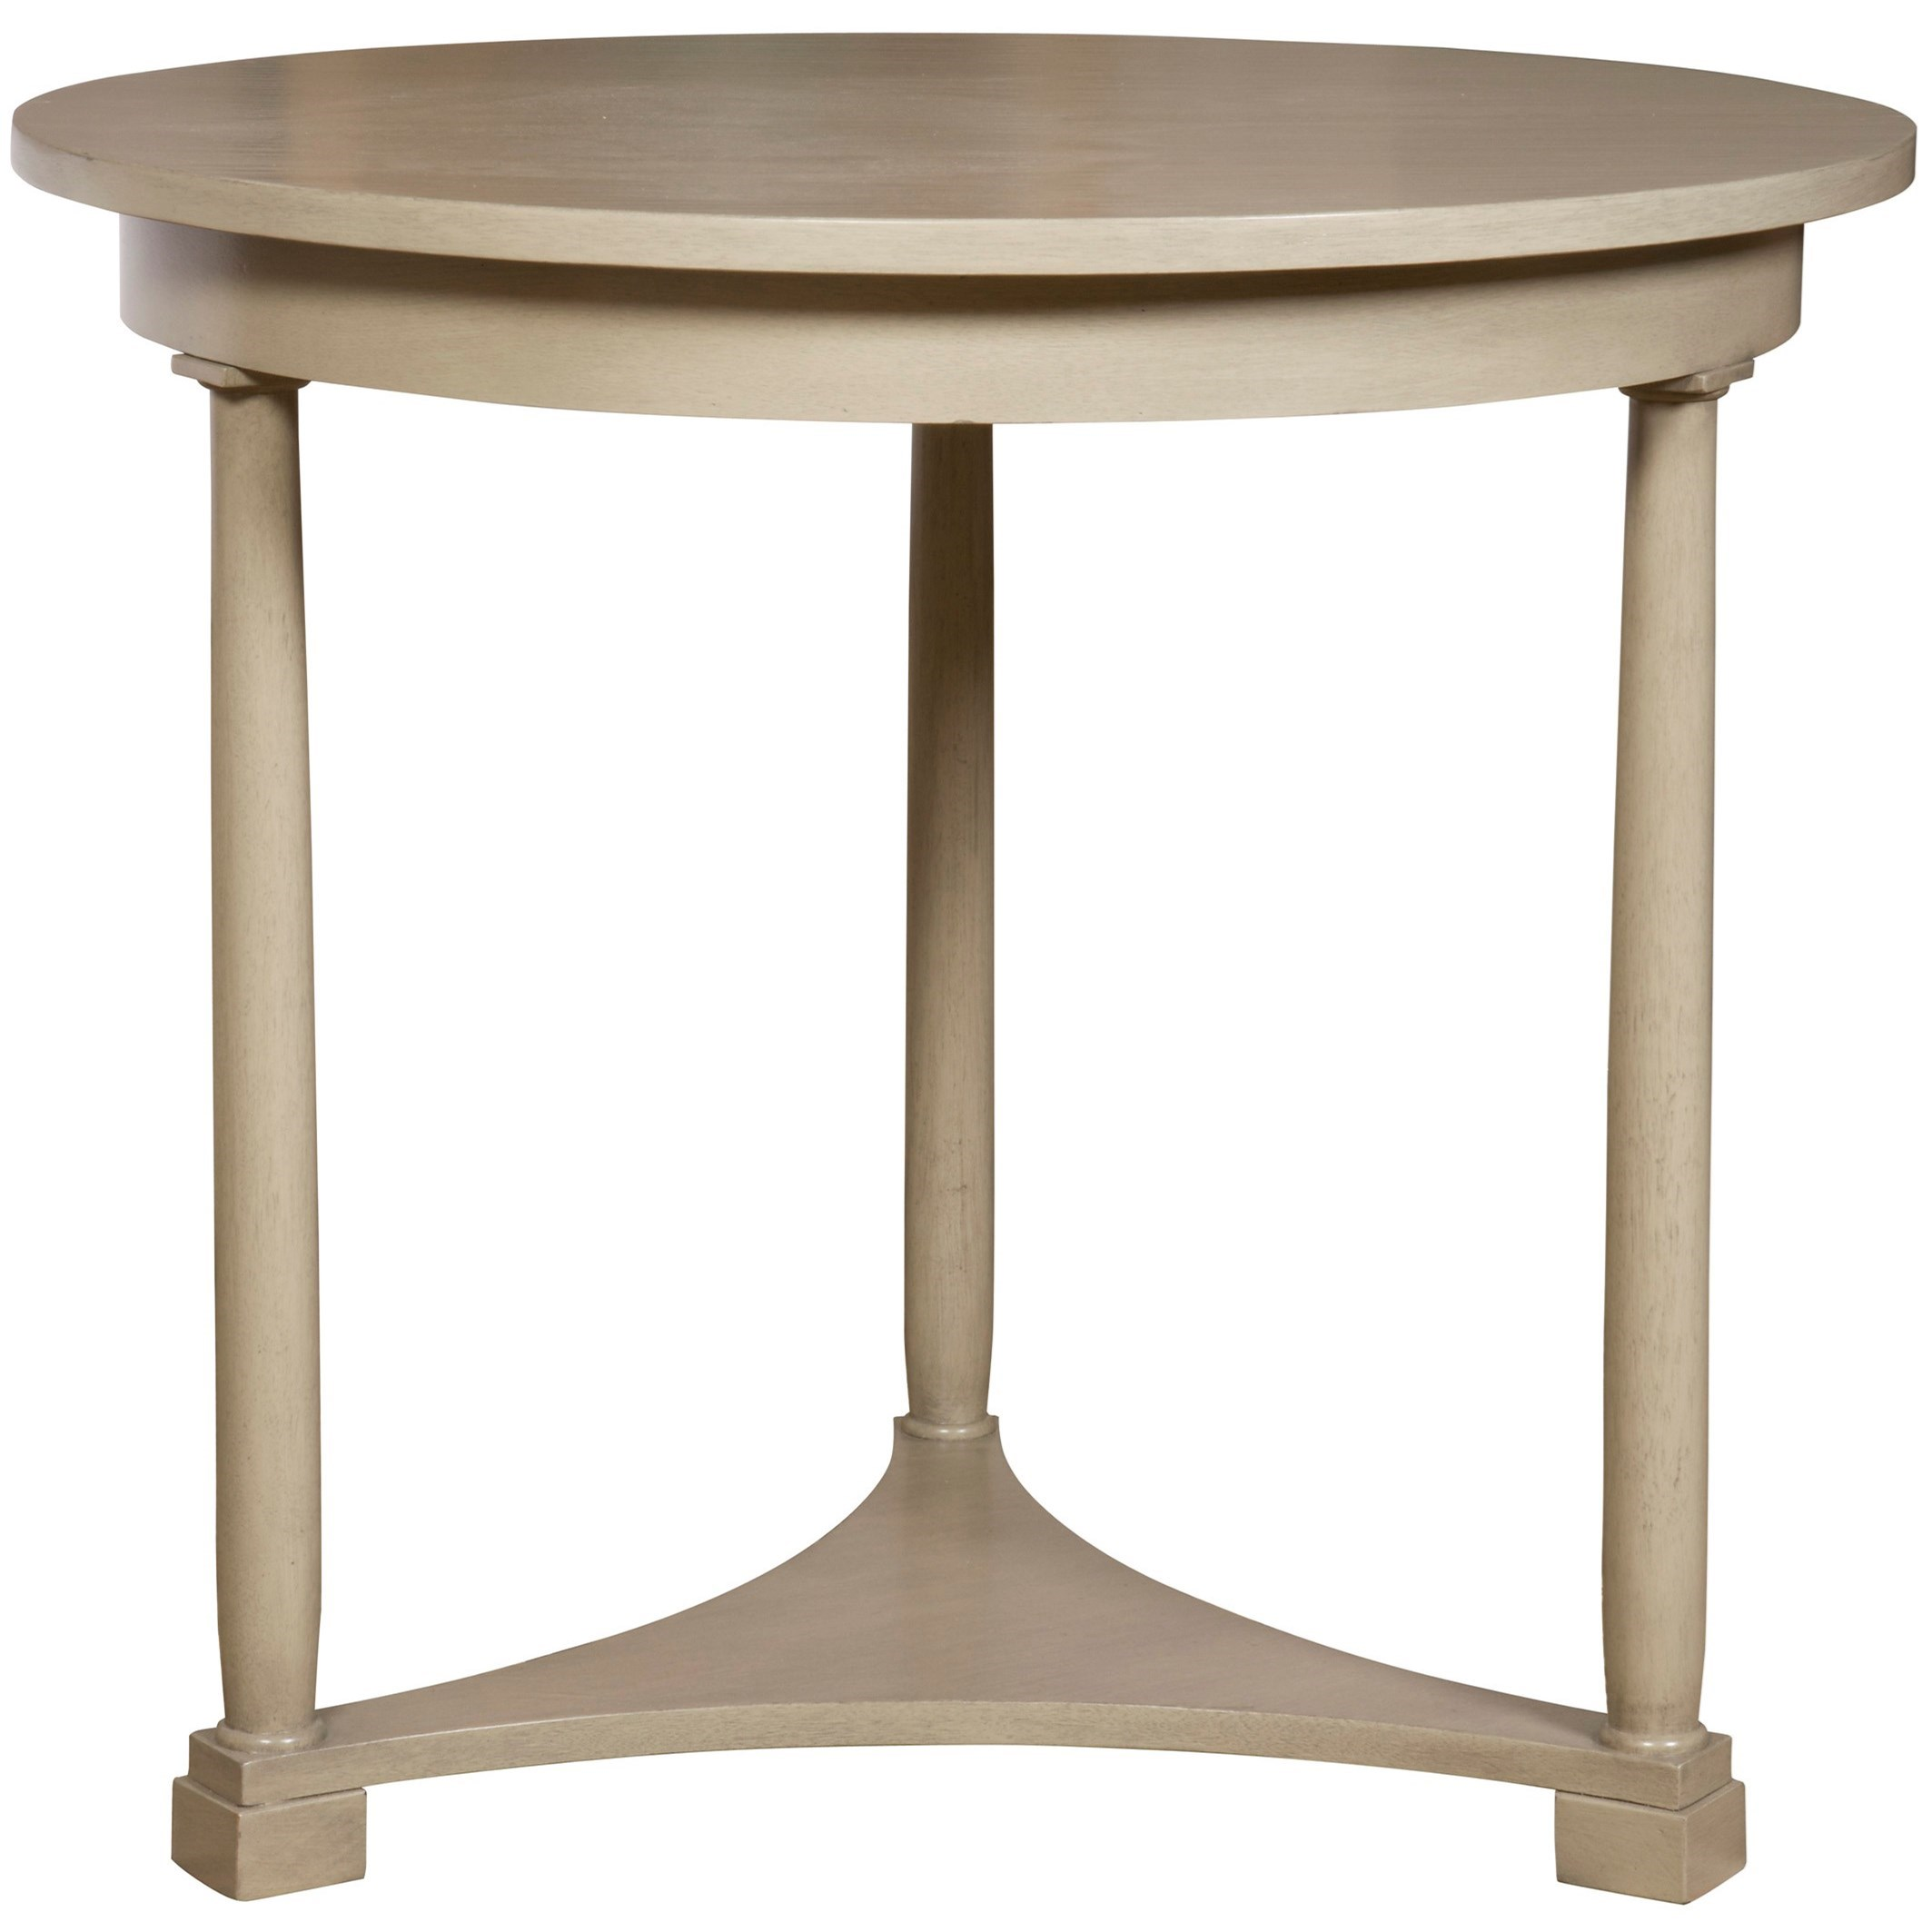 Compendium Cyril Lamp Table by Vanguard Furniture at Baer's Furniture